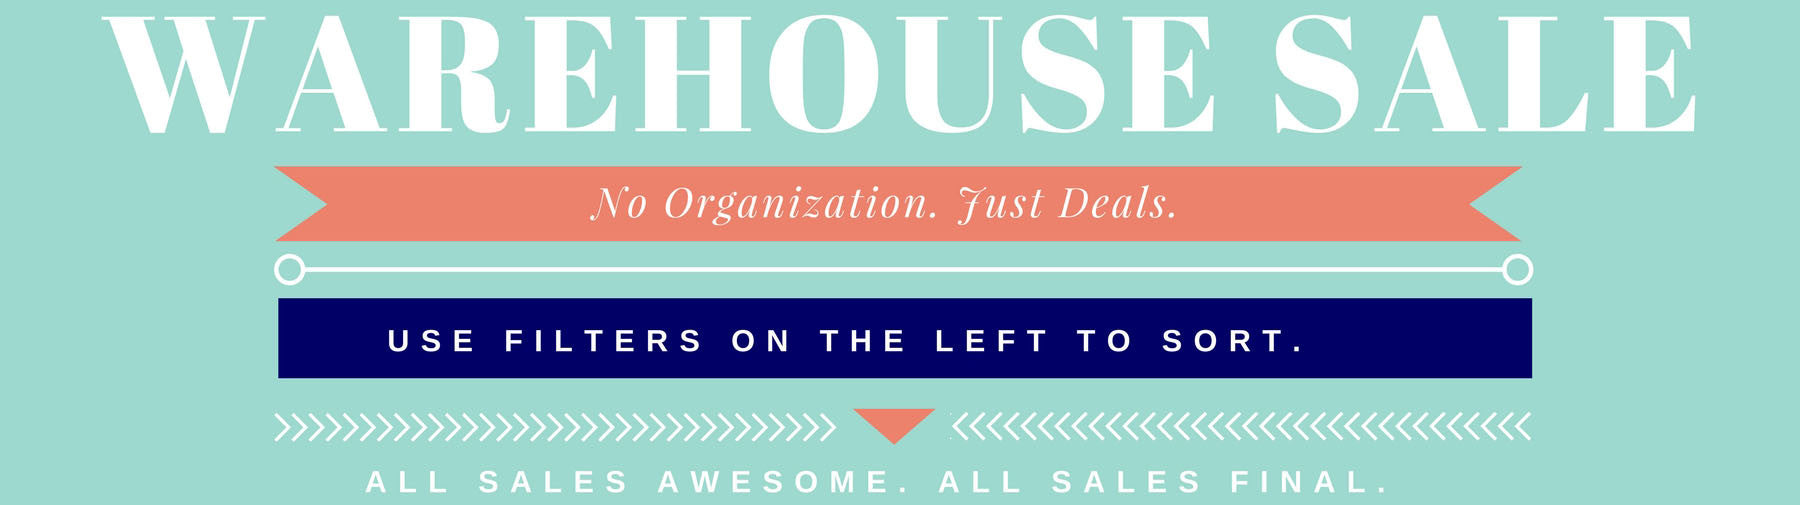 February Warehouse Sale